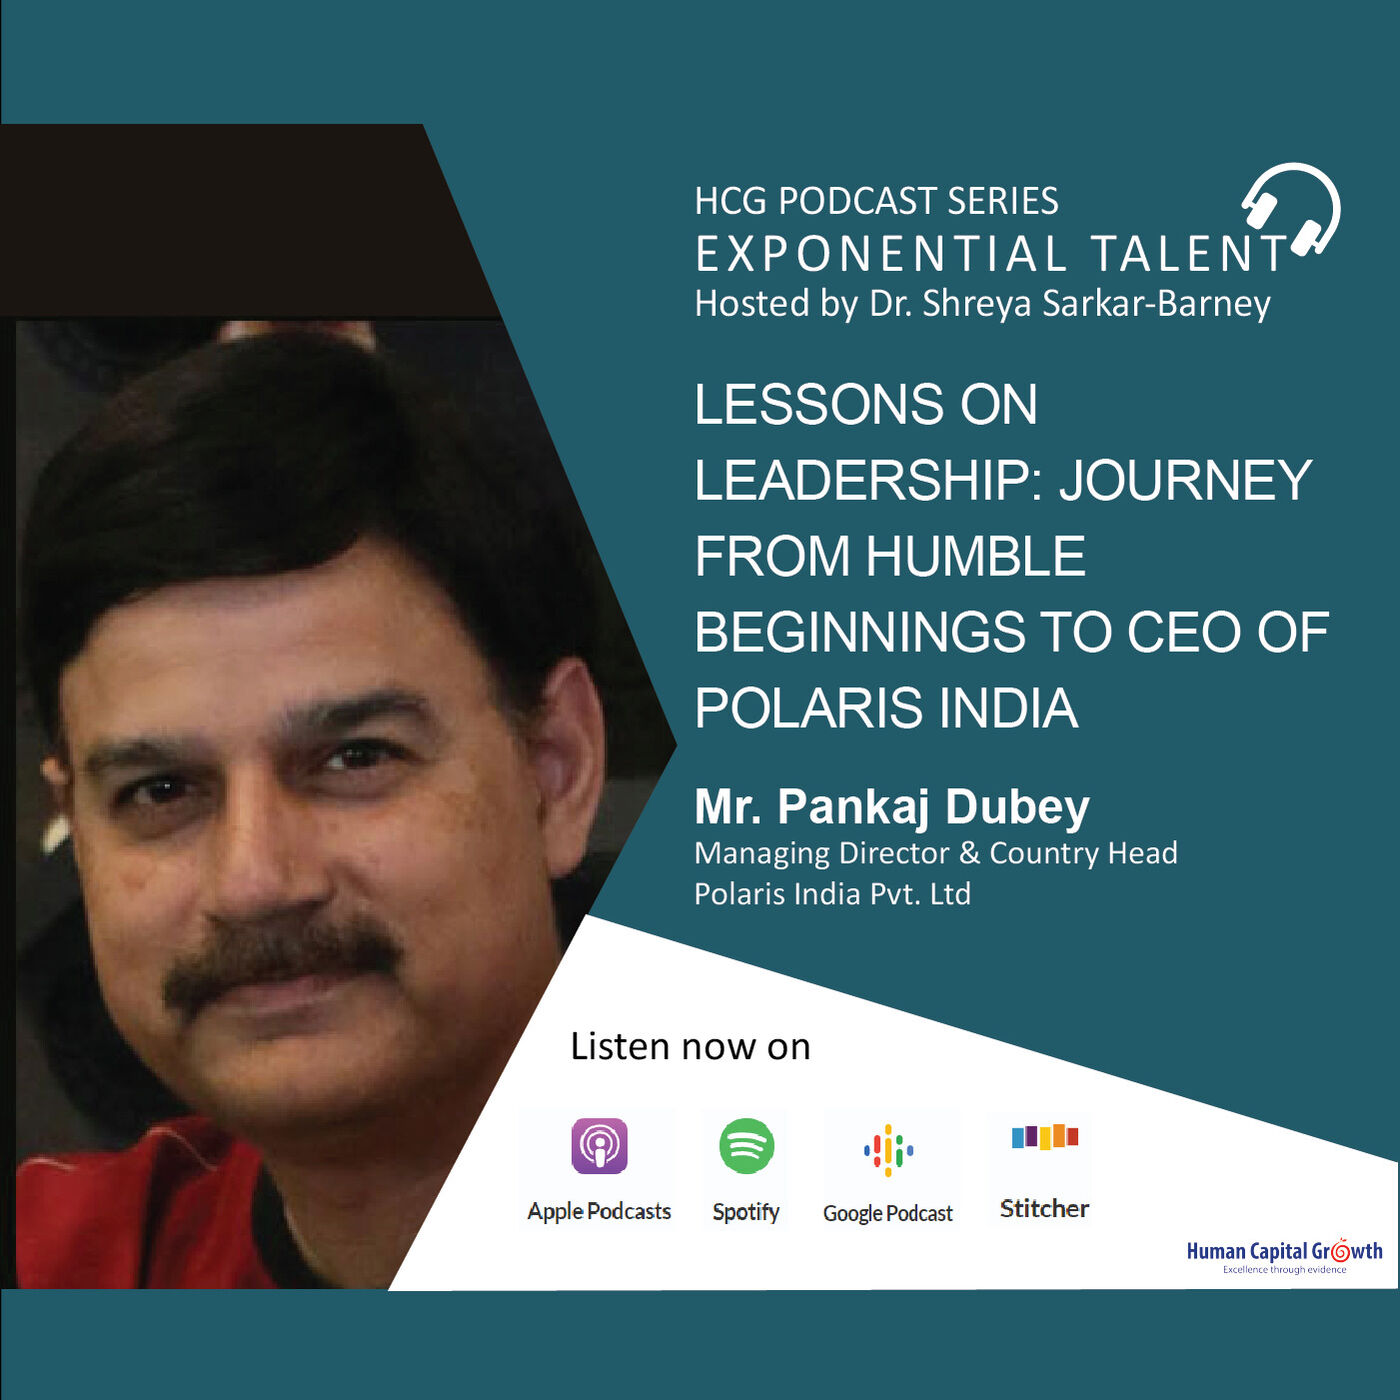 Lessons on Leadership: Journey from Humble Beginnings to CEO of Polaris India